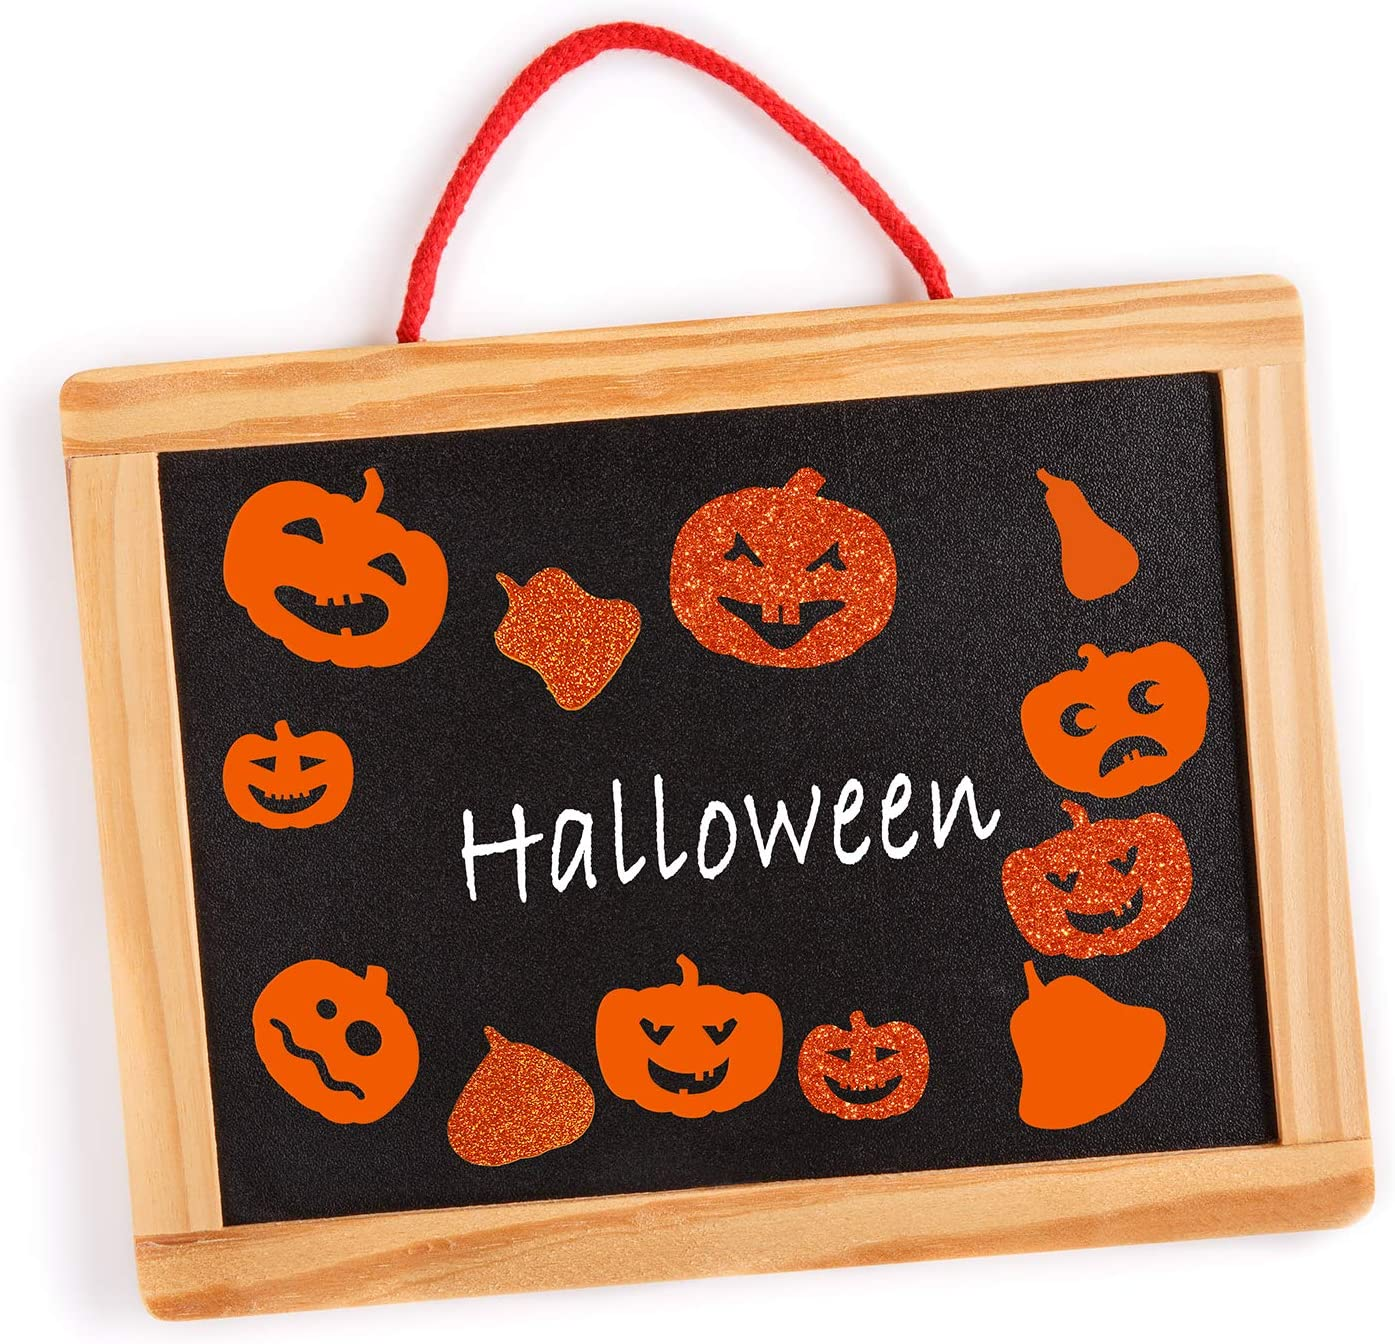 512 Pcs Bulk Foam Halloween Pumpkin Shapes Jack-O-Lantern Cutouts Stickers Self Adhesive Pumpkin Stickers 1 1.5 2 Embellishments for Kids Art Craft Trick-or-Treat Favors Halloween Fall Decoration